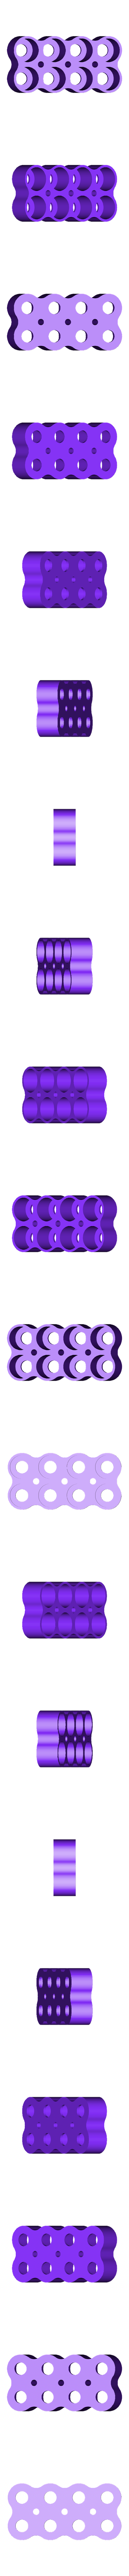 aa_box_01.stl Download free STL file AA / AAA Battery Holder / Box • 3D print design, peaberry